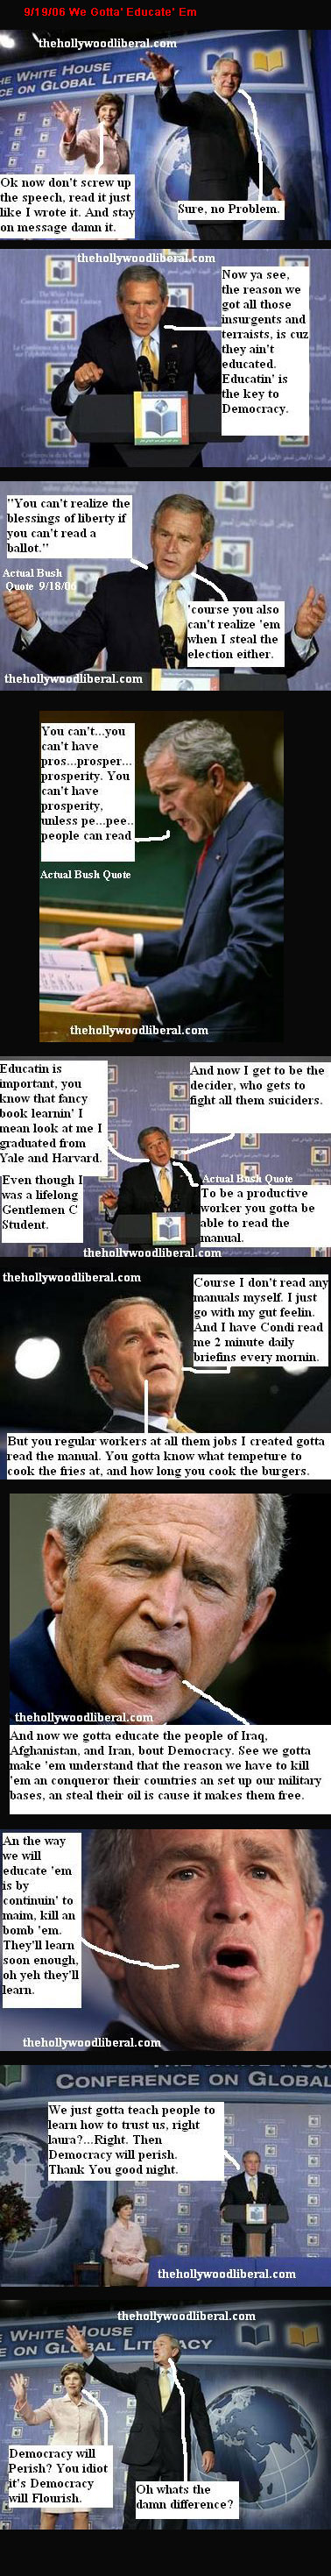 Bush preaches education